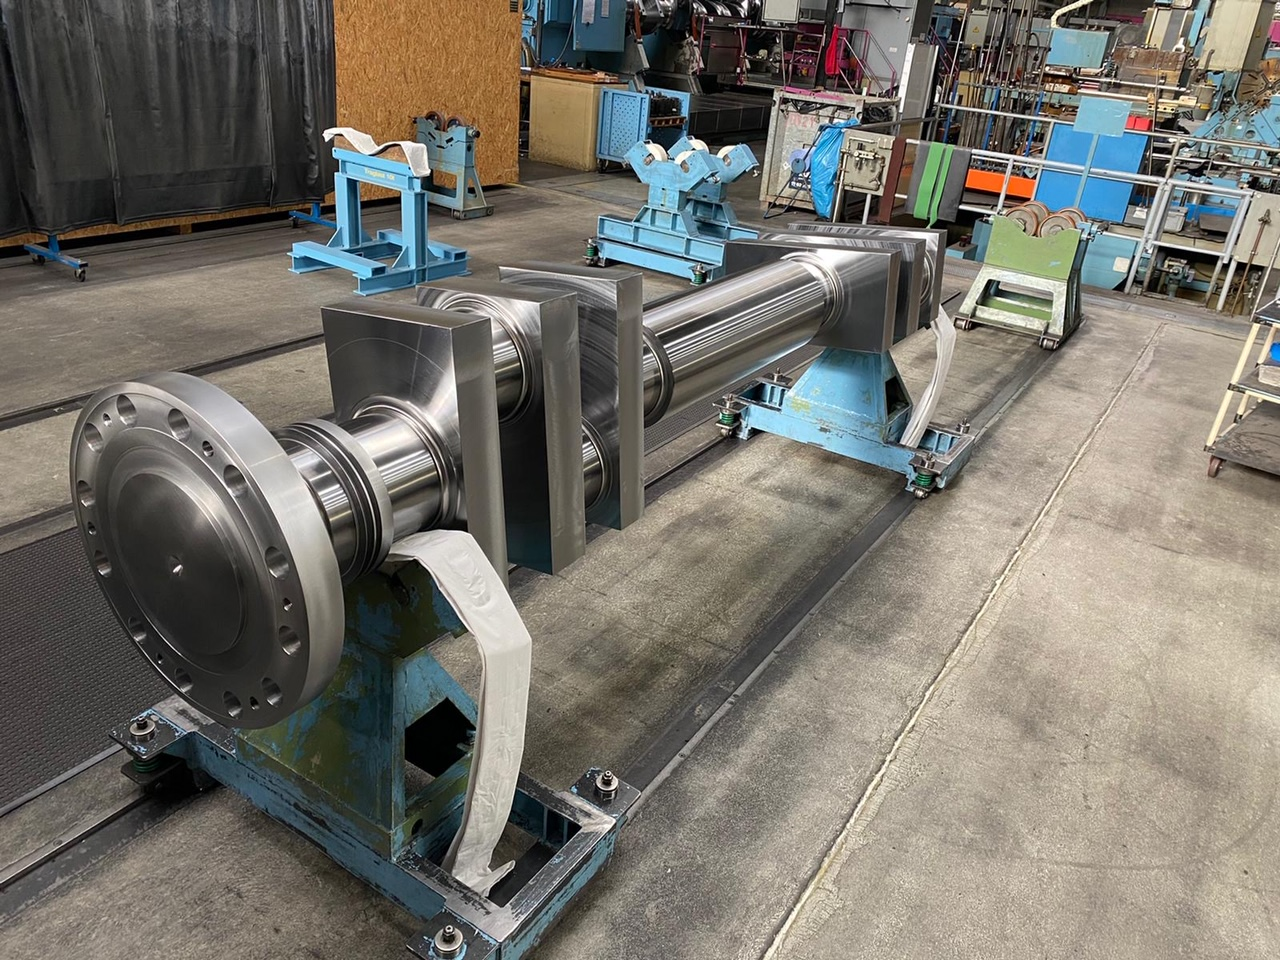 Crankshaft delivered within 14 weeks